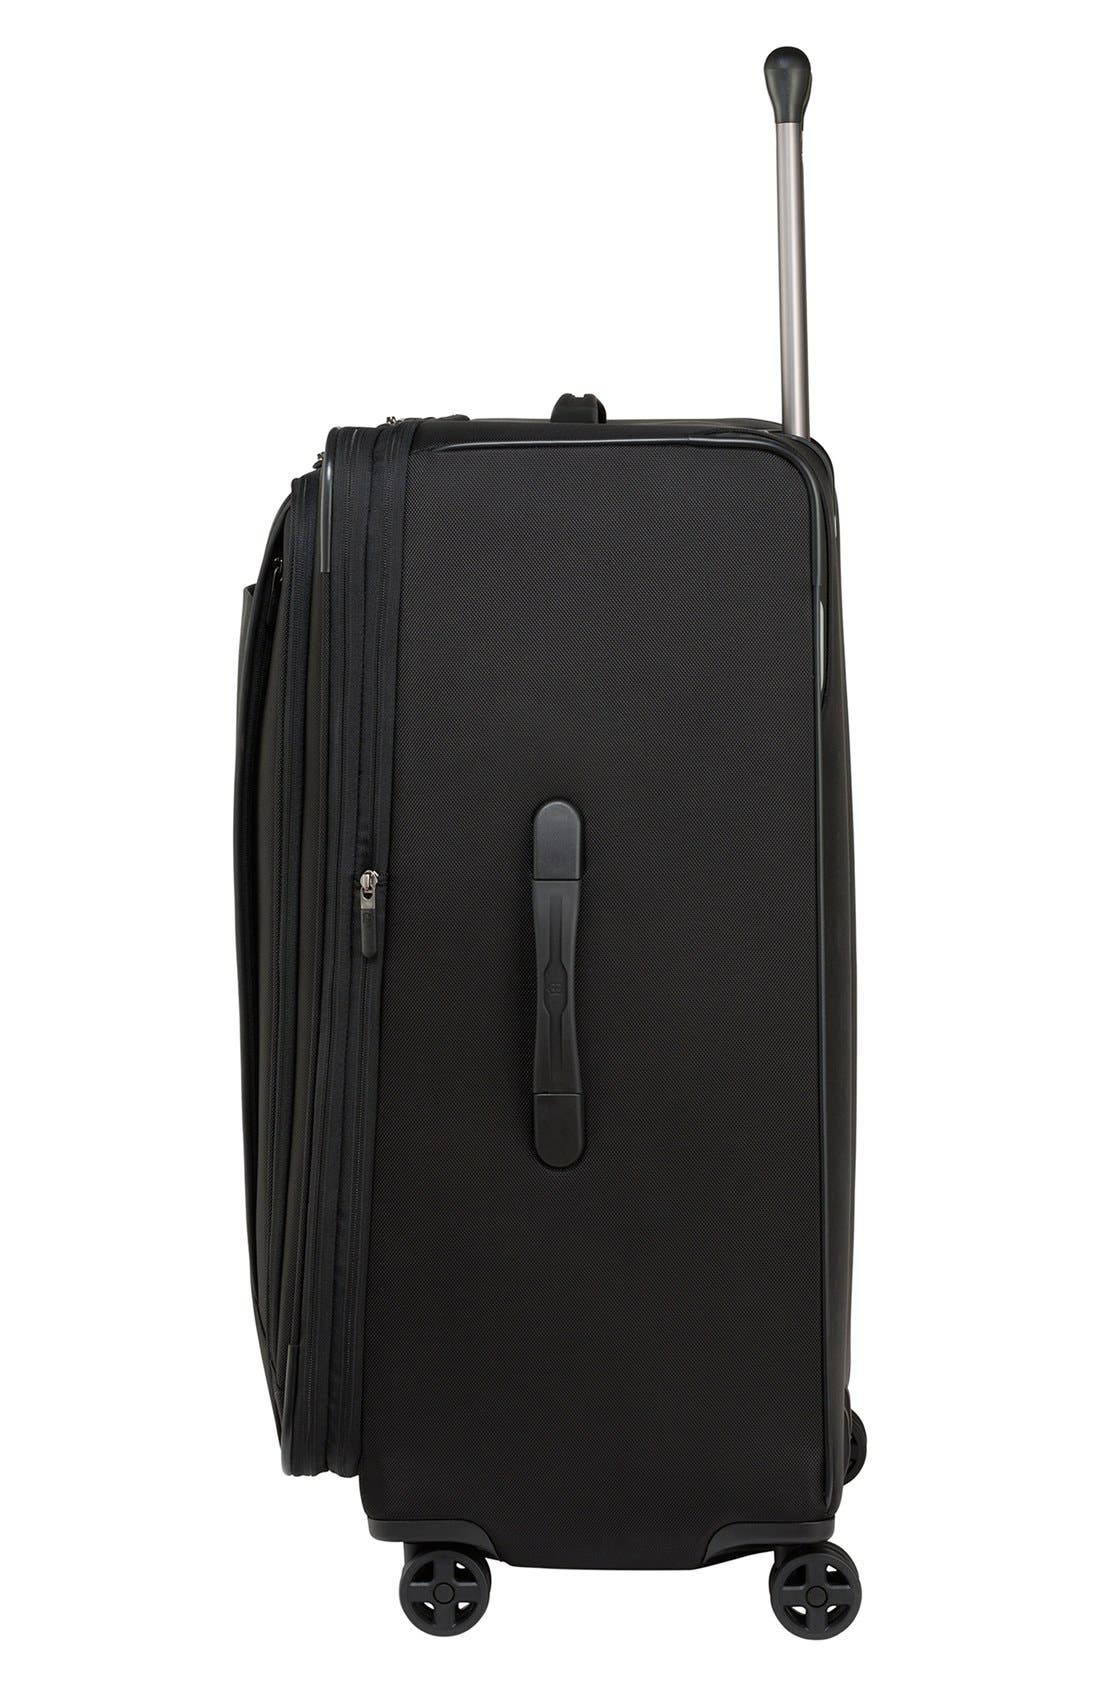 'WT 5.0' Dual Caster Wheeled Packing Case,                             Alternate thumbnail 3, color,                             Black